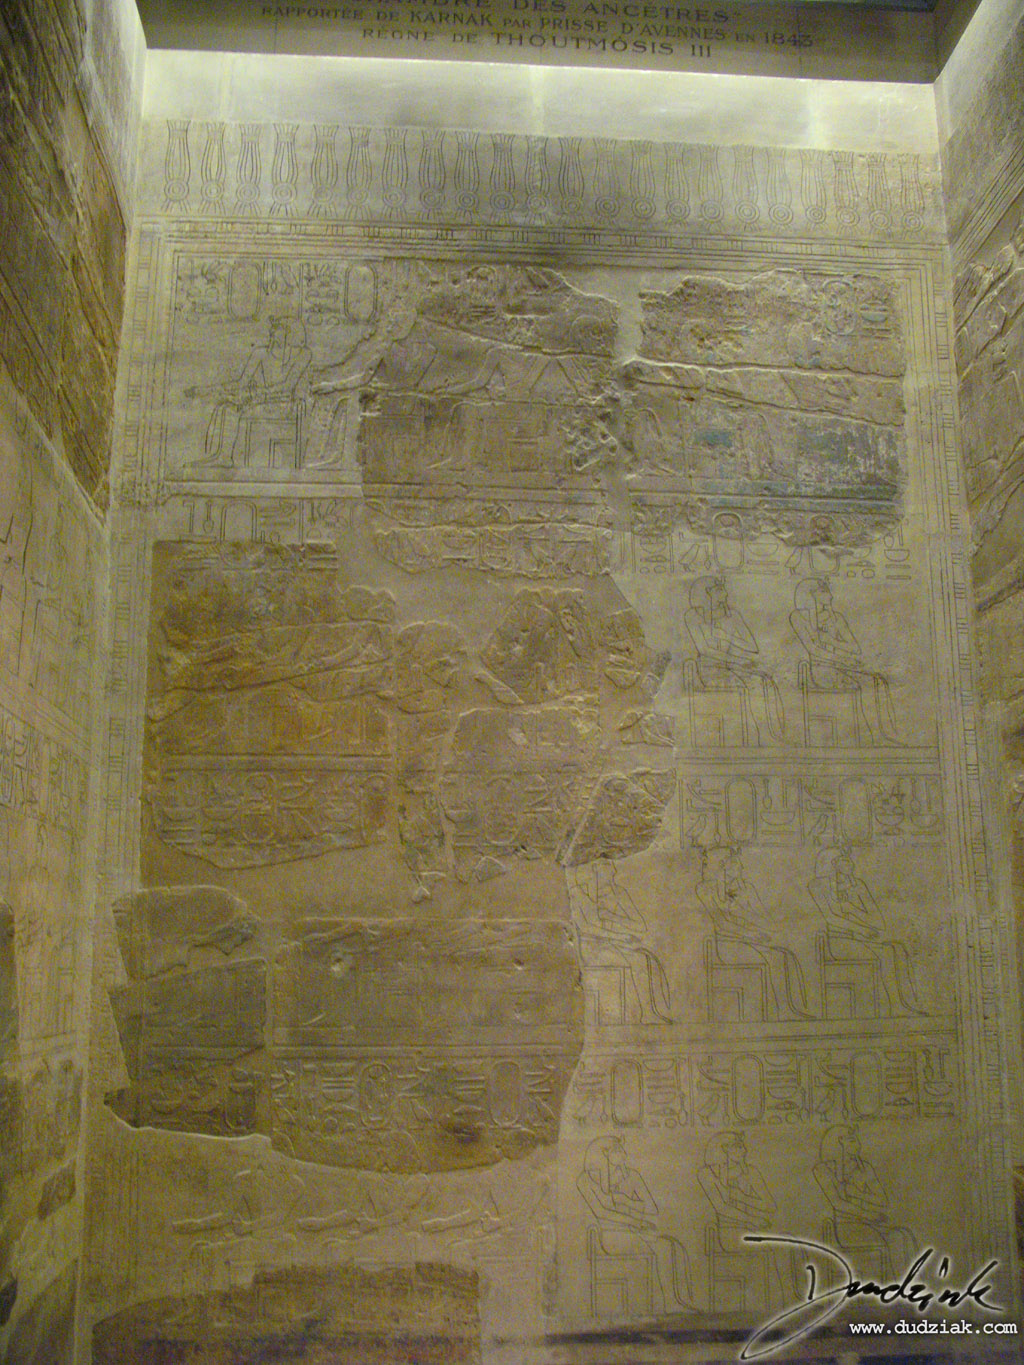 paris,  louvre,  Room of the Ancestors,  louvre museum,  Egyptian Hieroglyphs